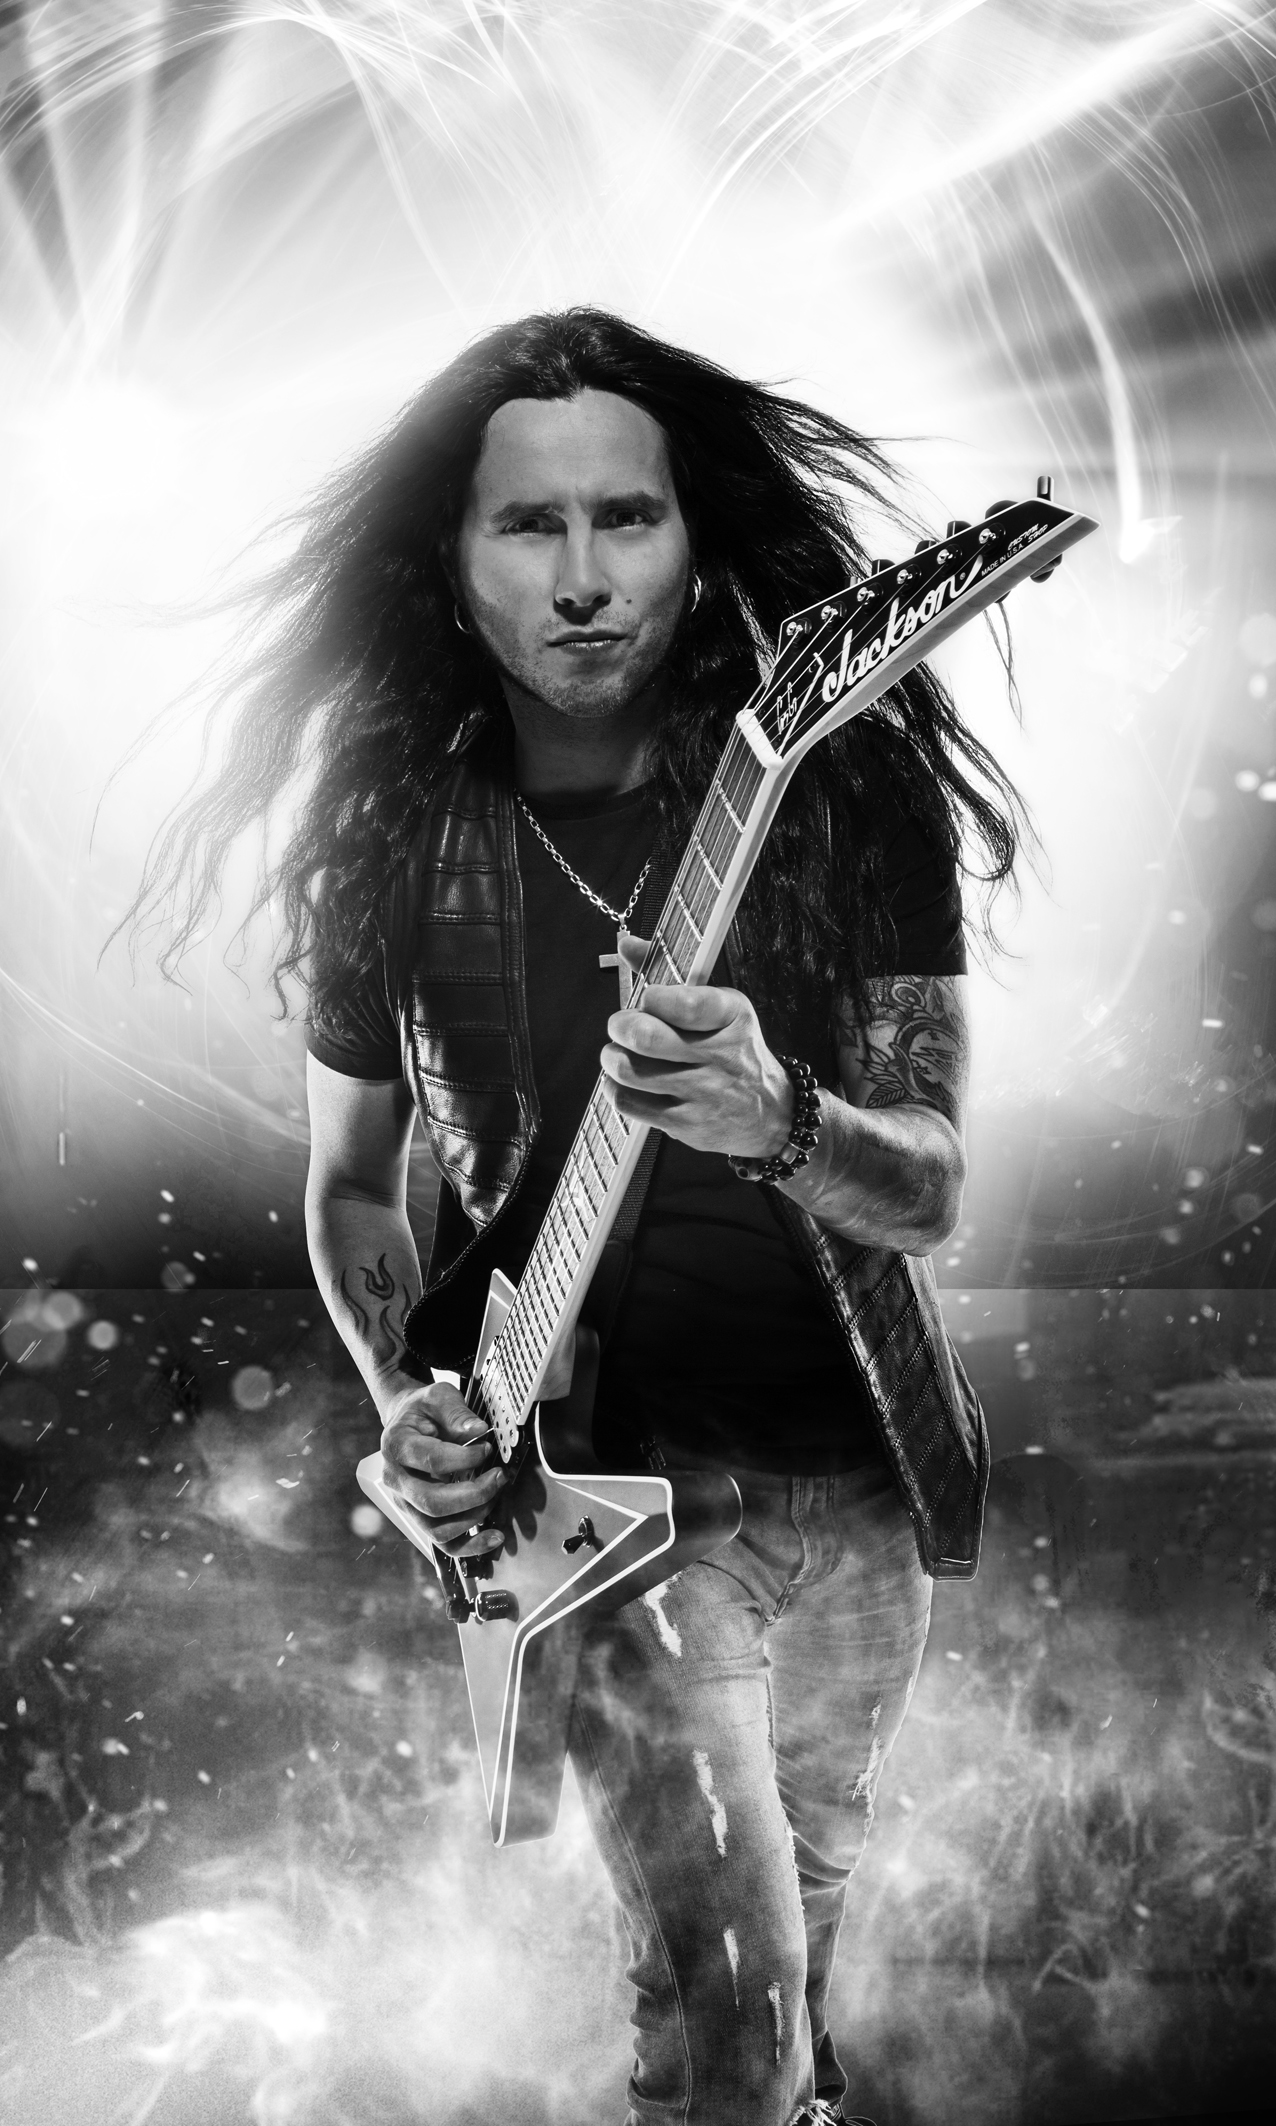 Interview: Gus G talks Firewind, Ozzy Osbourne, And Future Solo Record